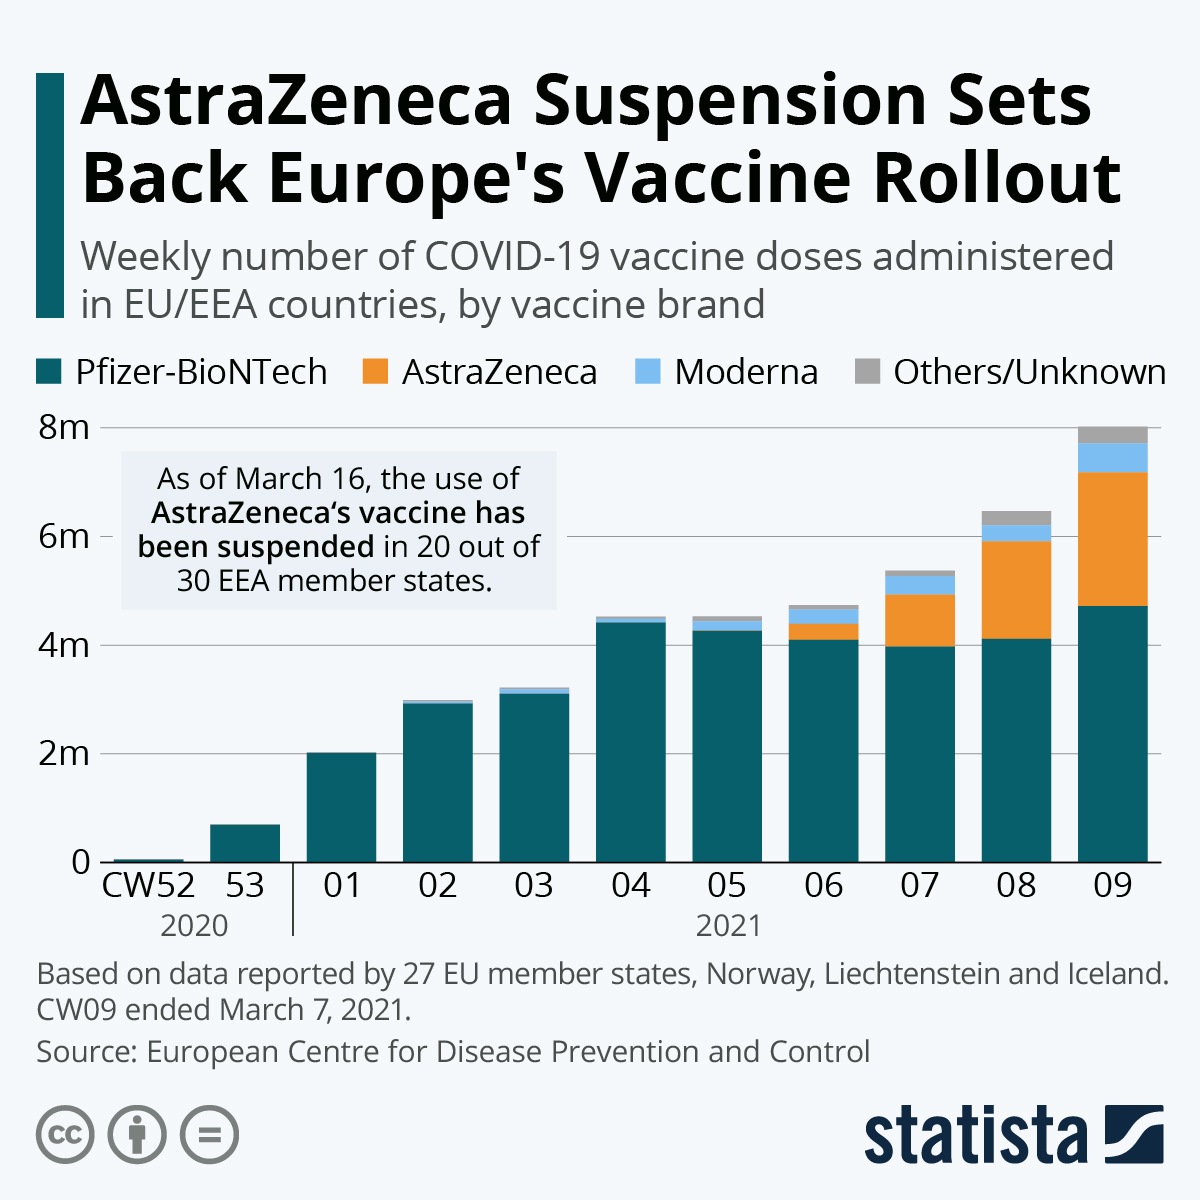 The suspension of Astra's vaccine is slowing down vaccine rollouts